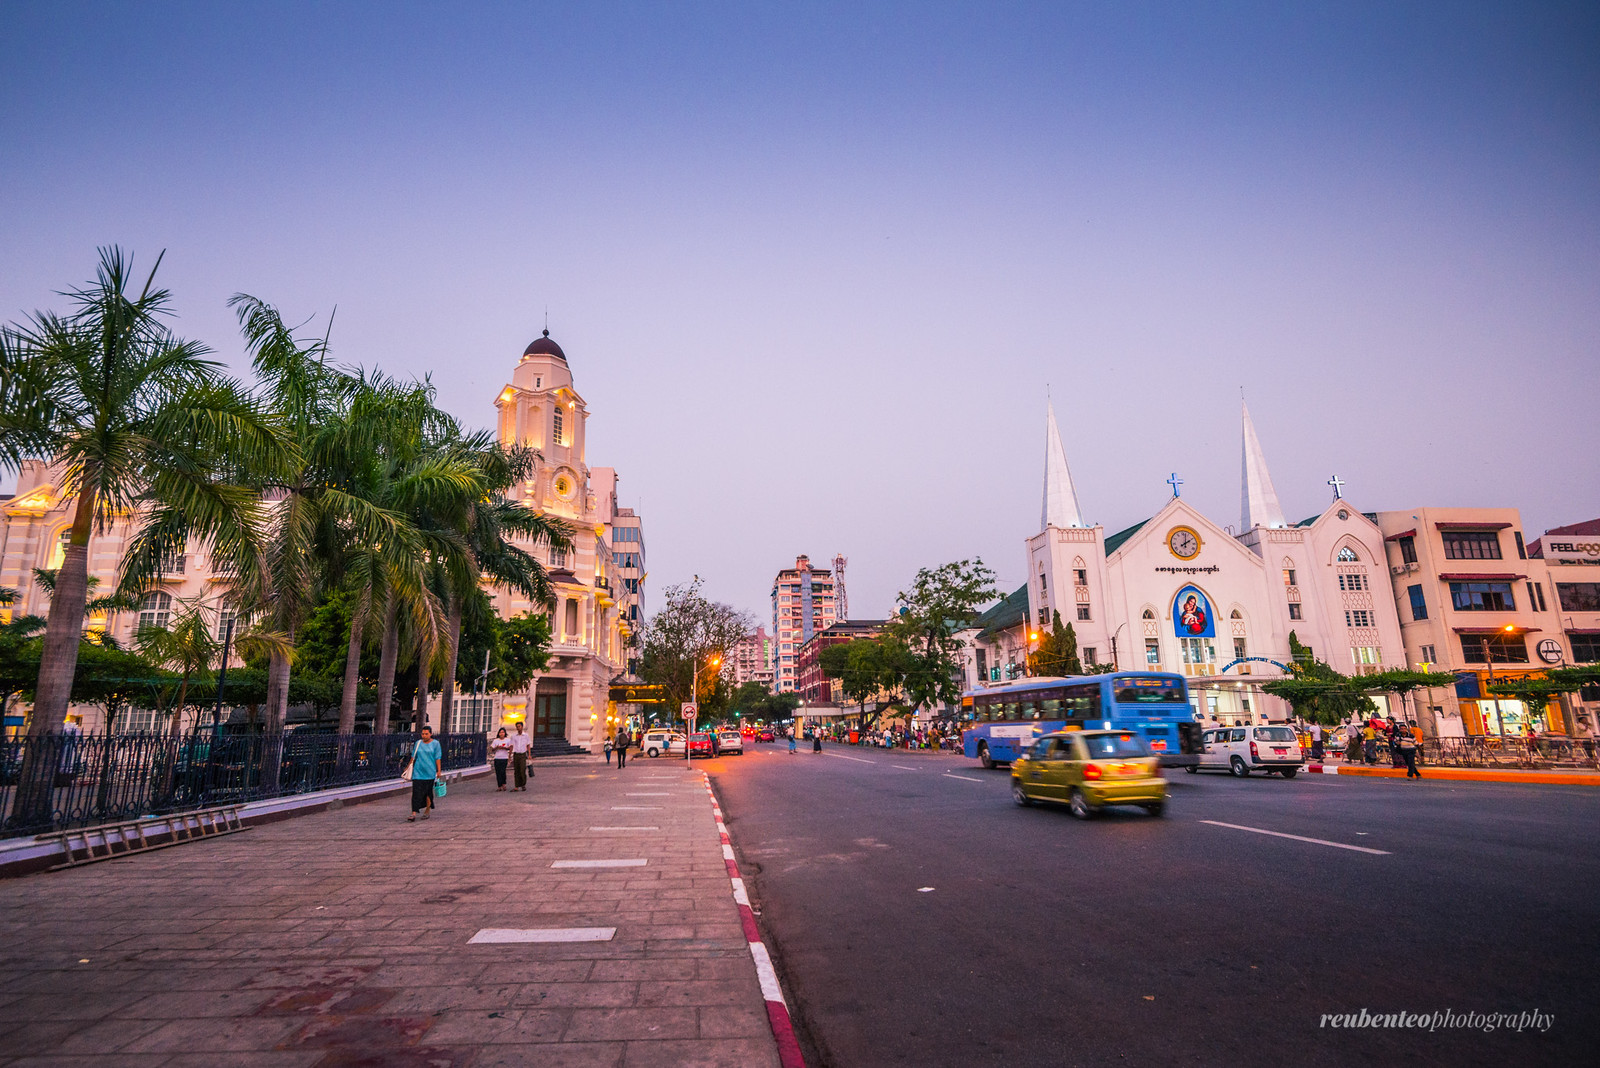 Yangon City Center at Sunset